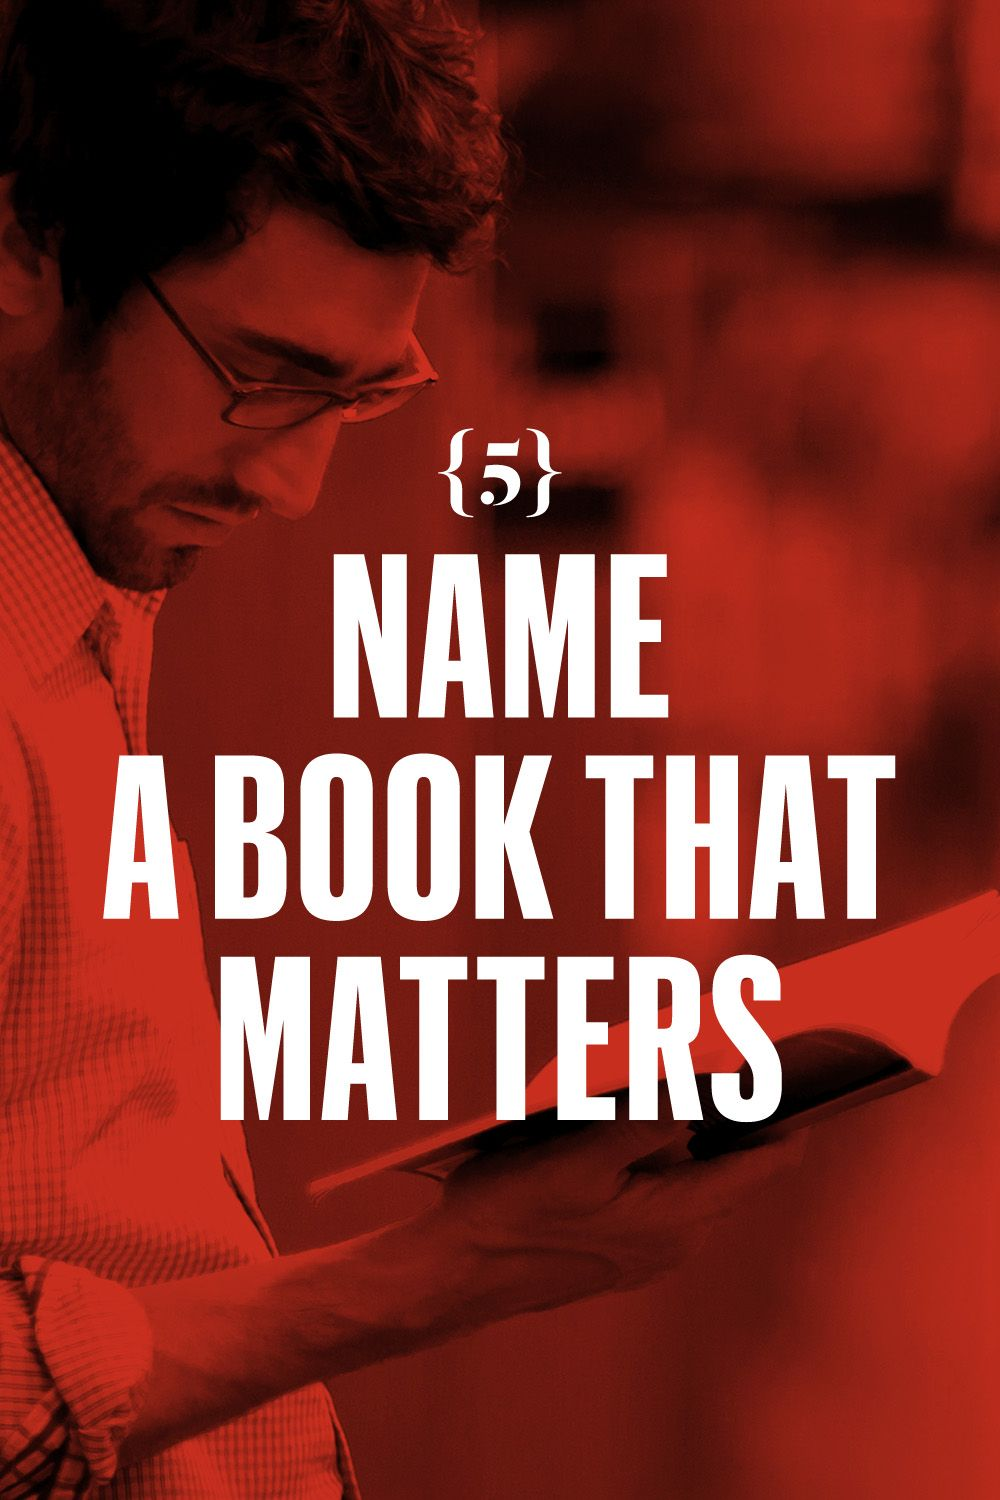 <p>Name a book that matters. <em>The Catcher in the Rye</em> does not matter. Not really. You gotta read.</p>